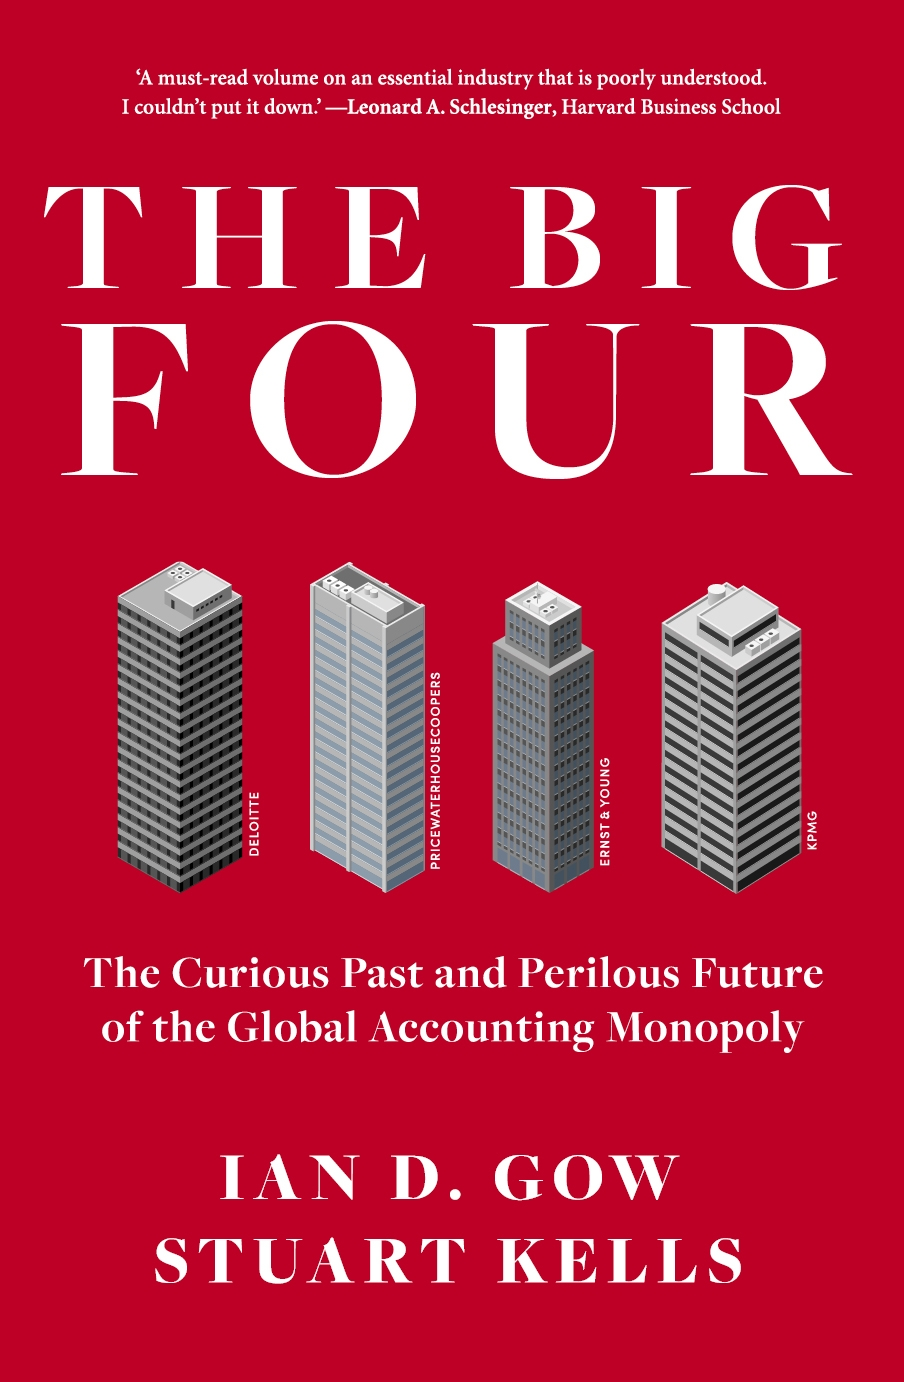 Ian D. Gow and Stuart Kells | The Big Four: The Curious Past and Perilous Future of the Global Accounting Monopoly